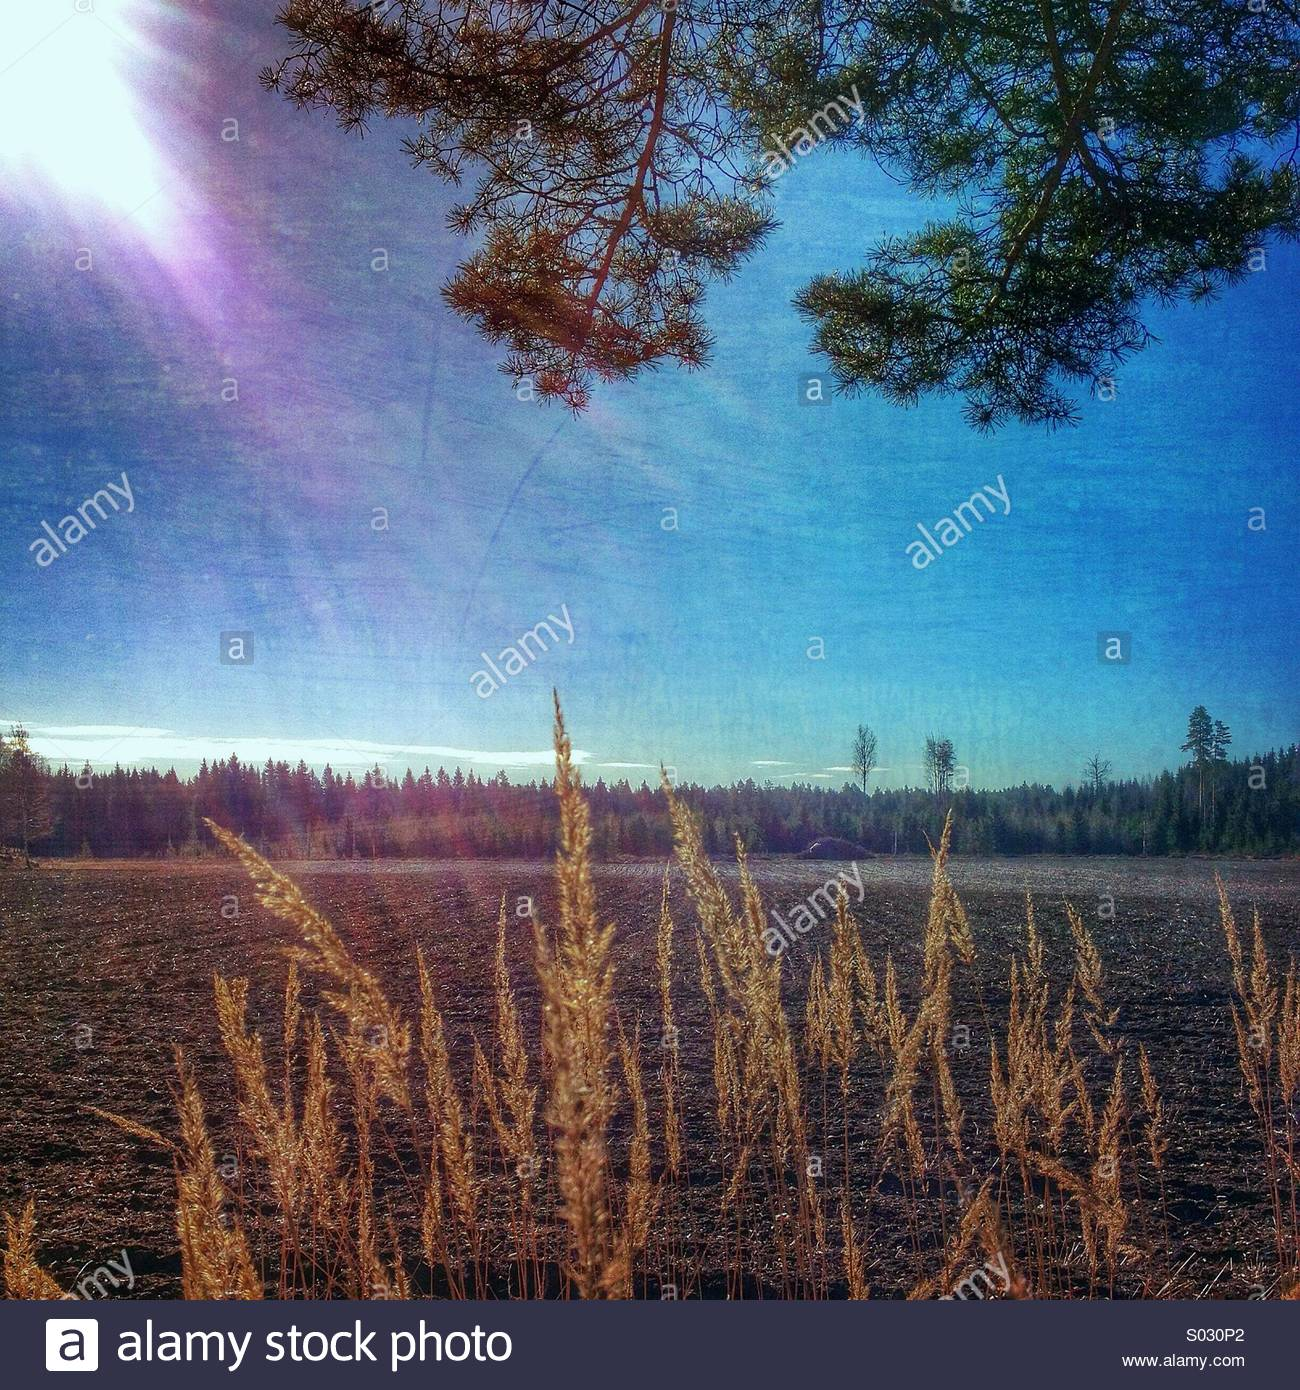 Filtered landscape - Stock Image